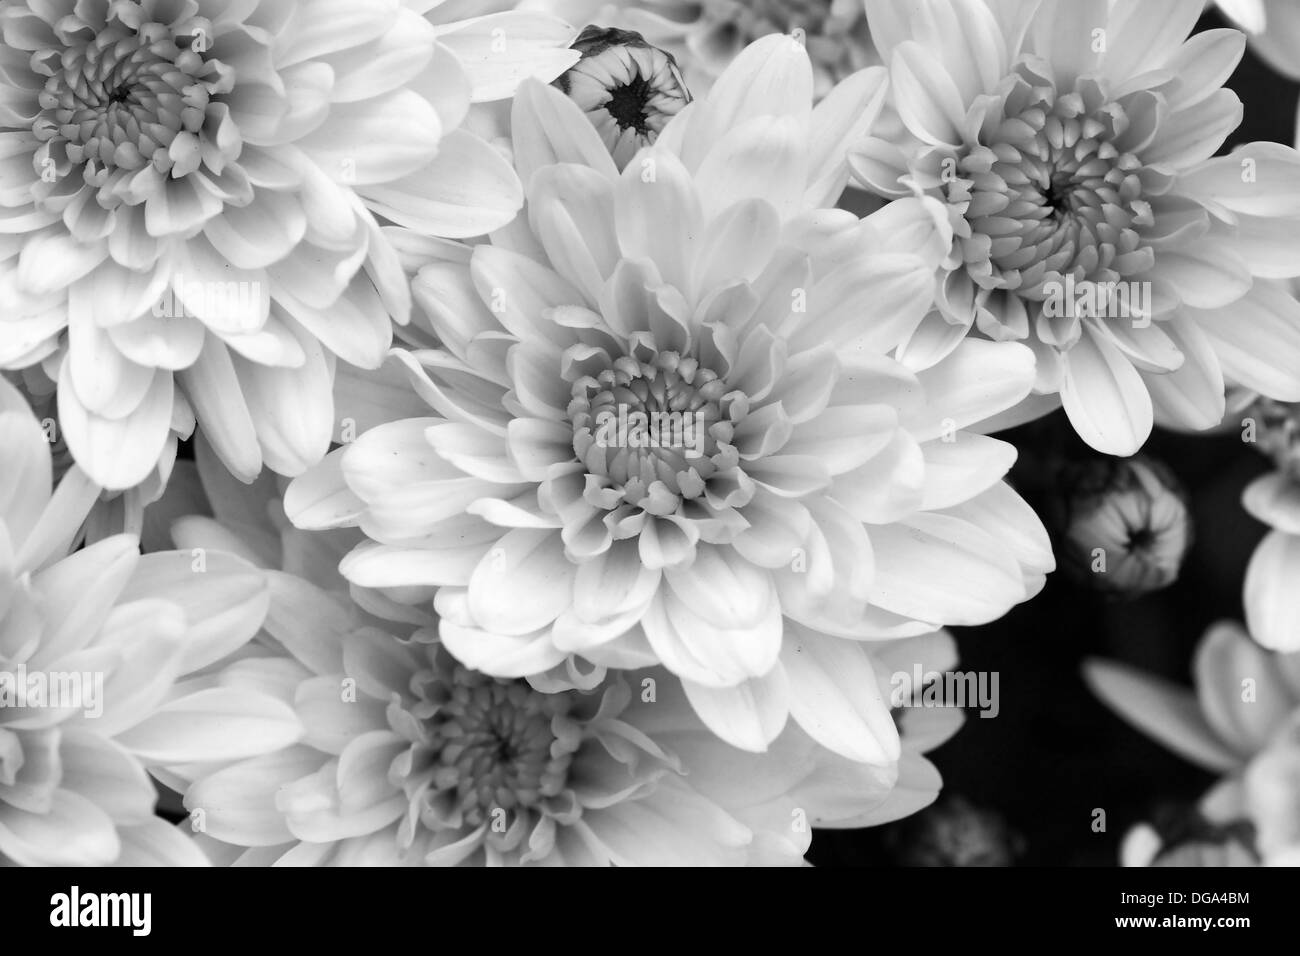 Black and white mums flowers beautiful floral background stock black and white mums flowers beautiful floral background mightylinksfo